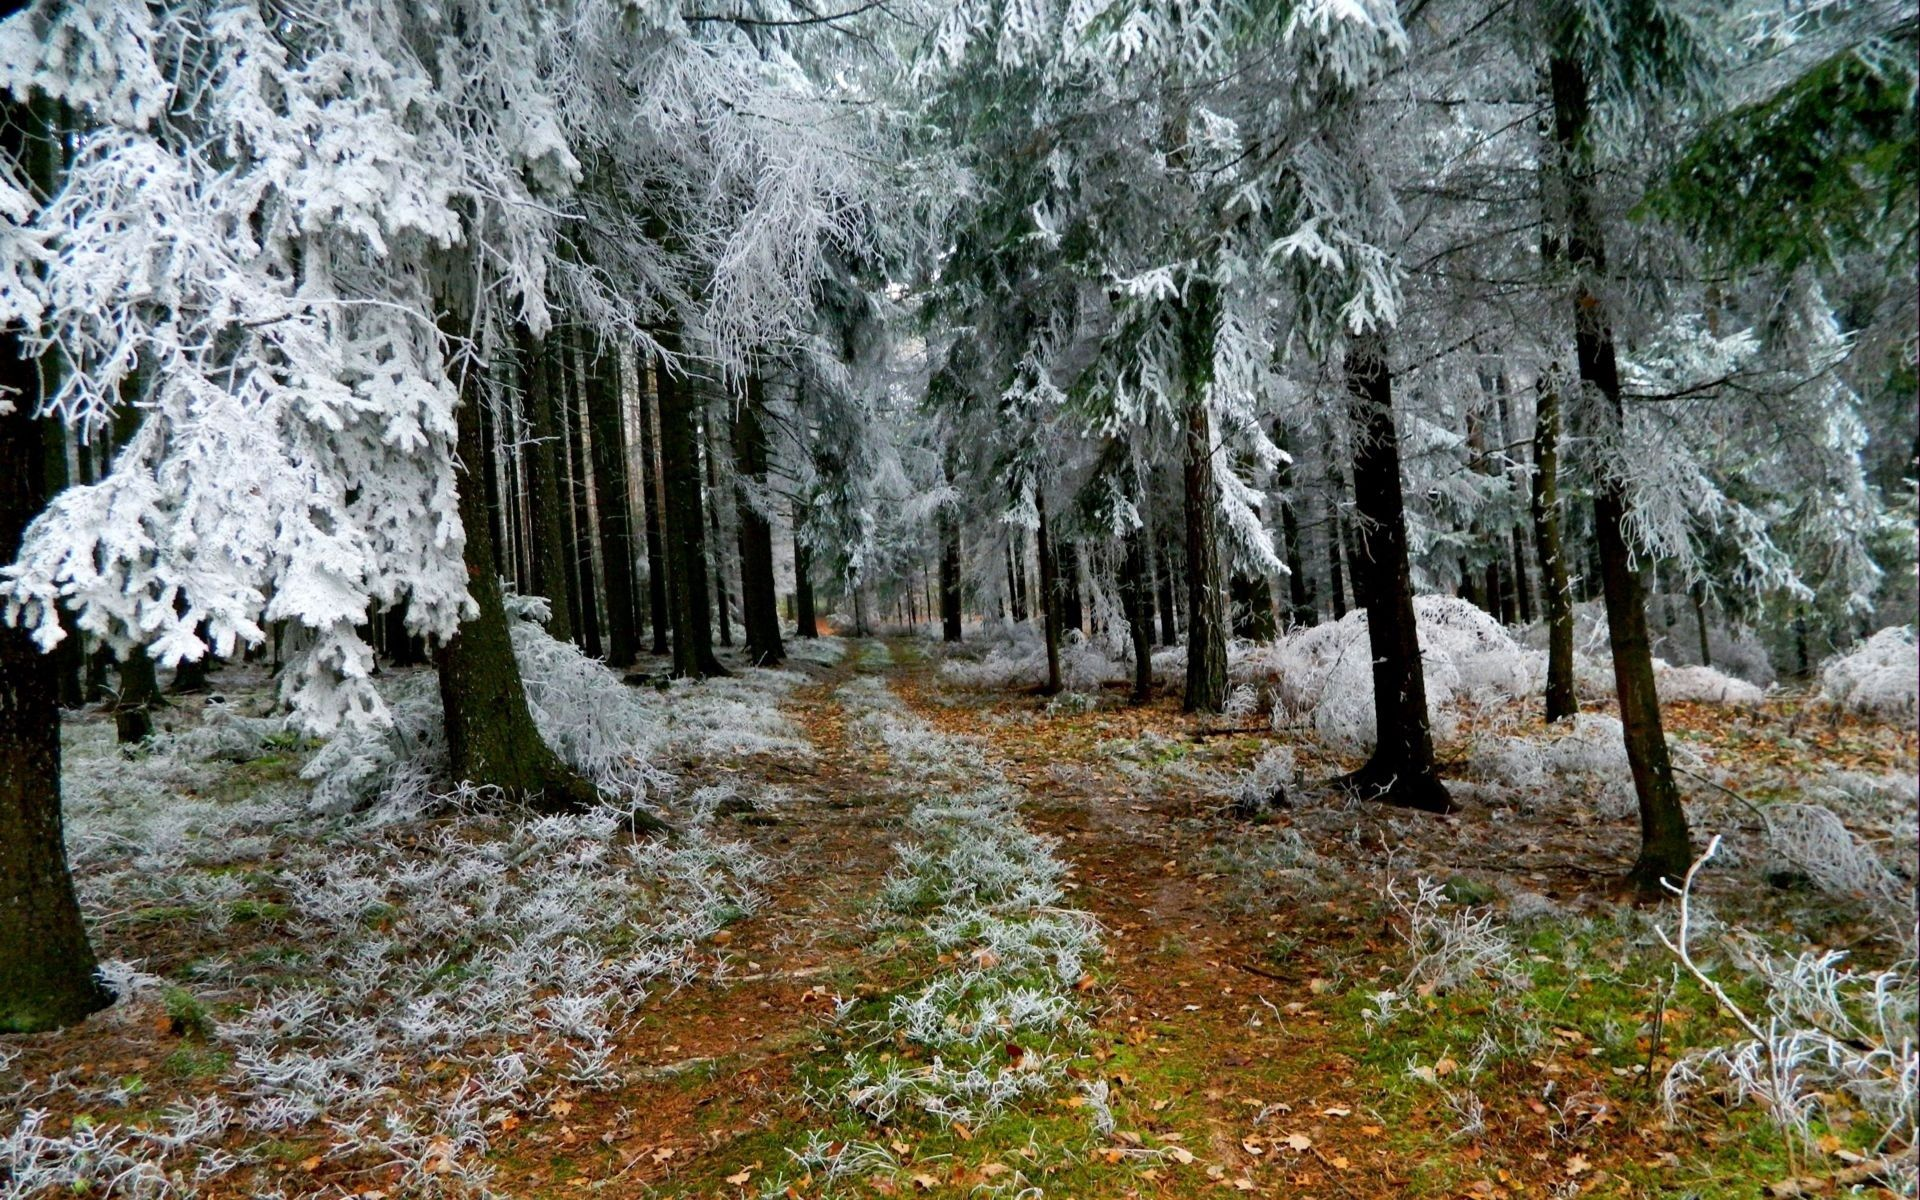 121488 download wallpaper Branch, Ate, Winter, Nature, Road, Branches, Land, Earth, Frost, Hoarfrost screensavers and pictures for free